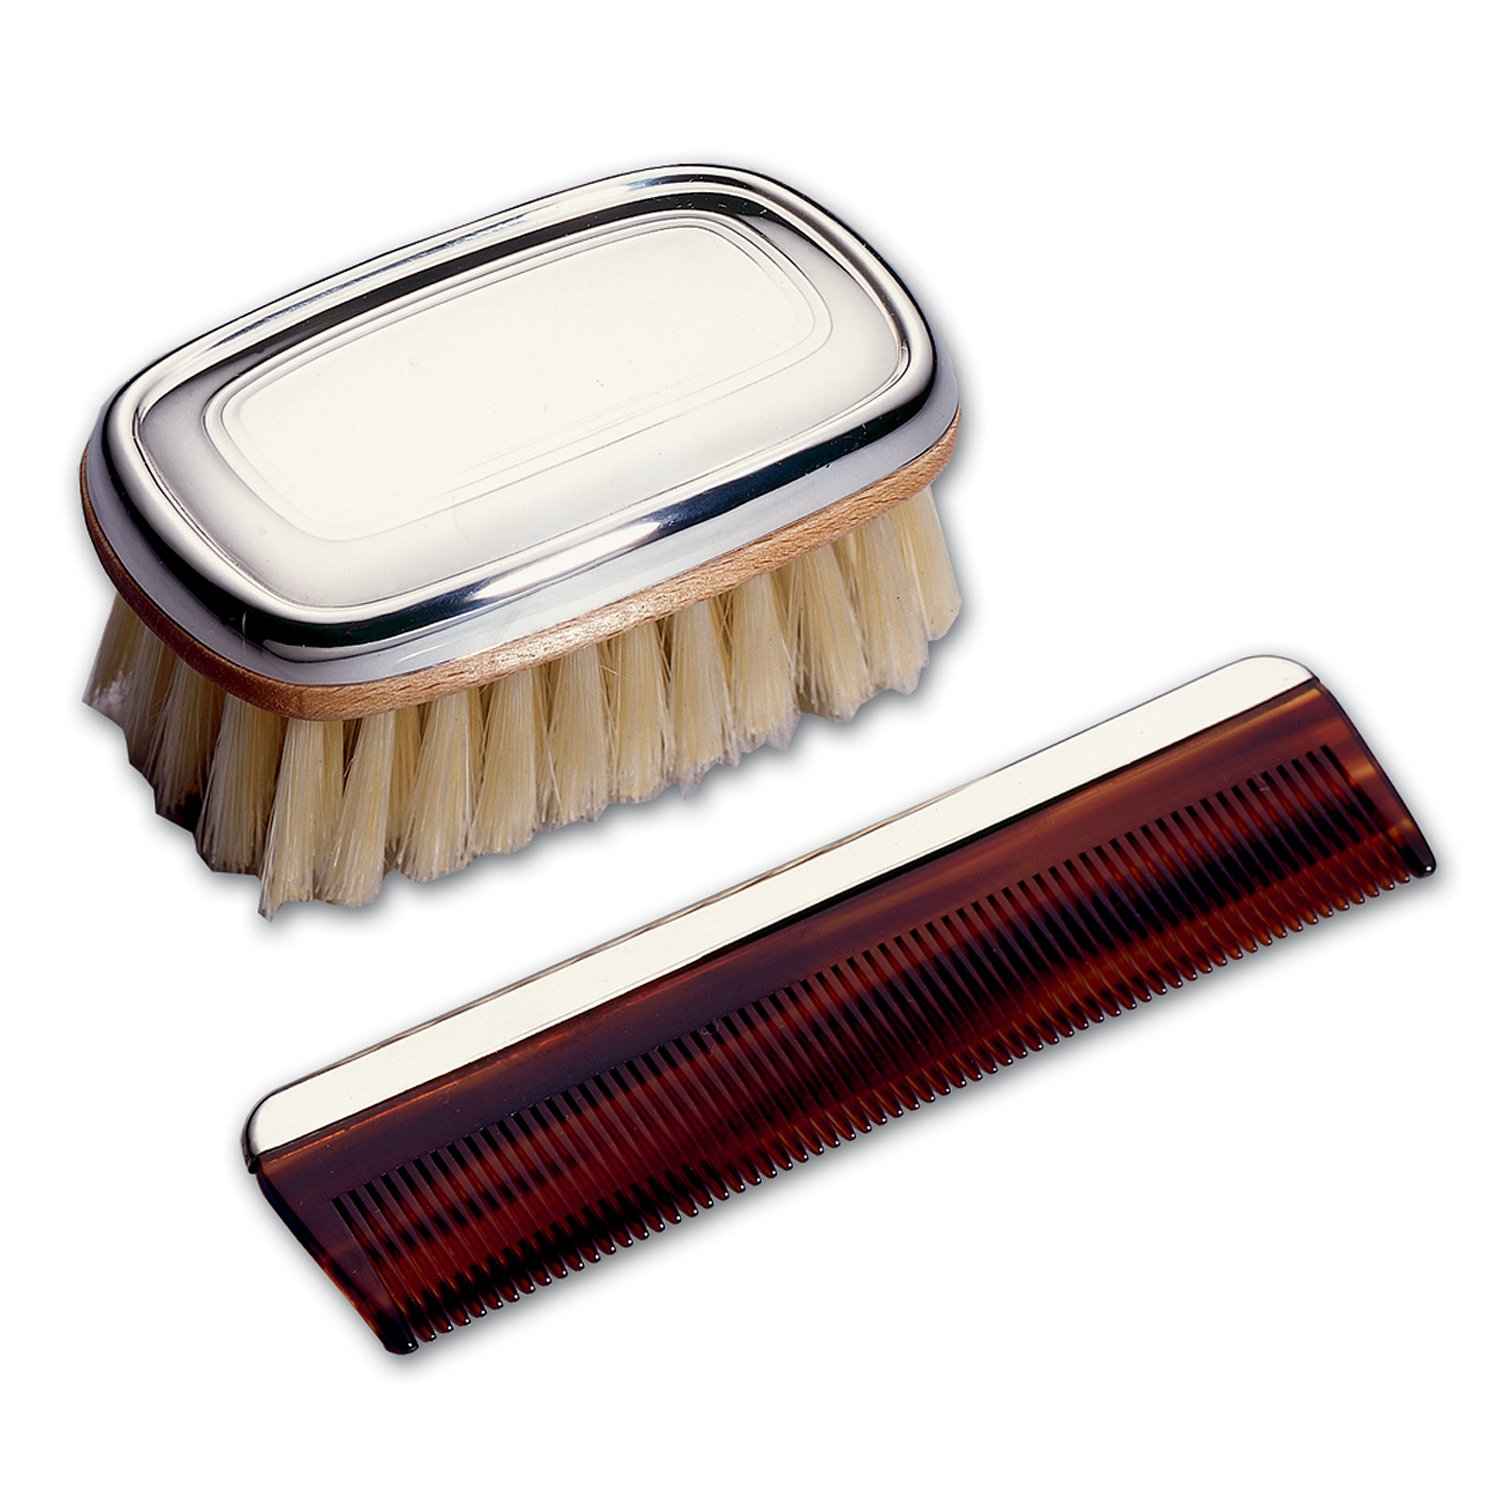 Lunt Sterling Boy's Comb and Brush Set